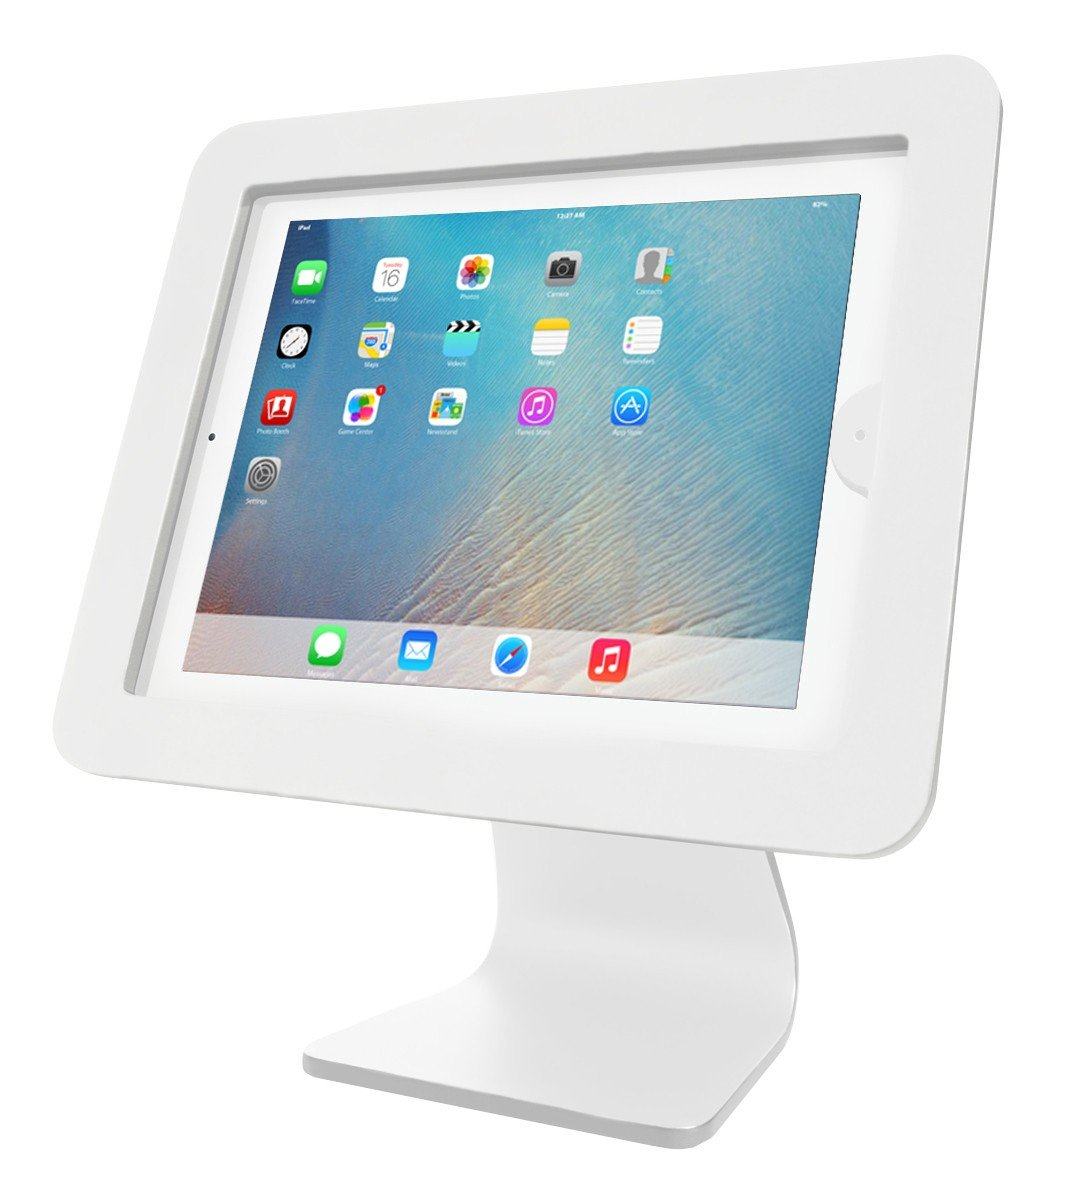 Maclocks All-in-One Rotating iPad Security Stand, White (AIO-W)